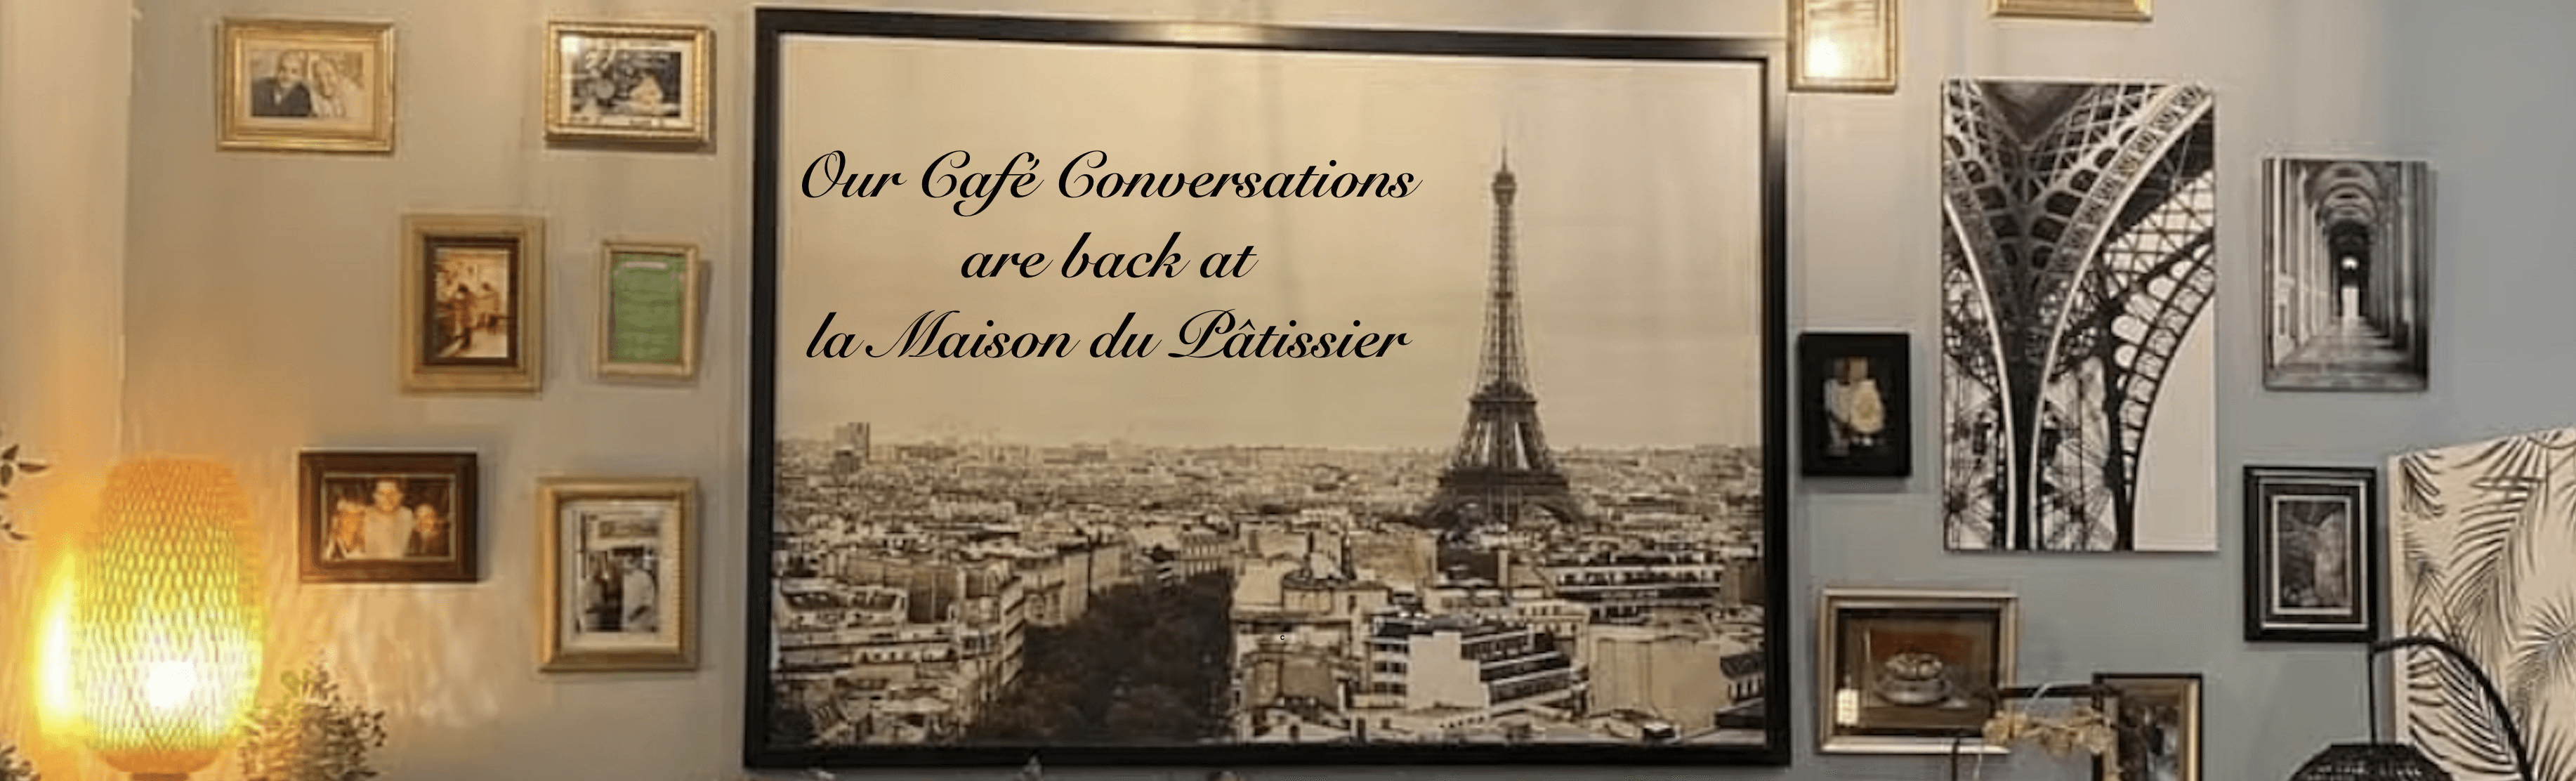 Cafe Conversations are back à la Maison du Pâtissier